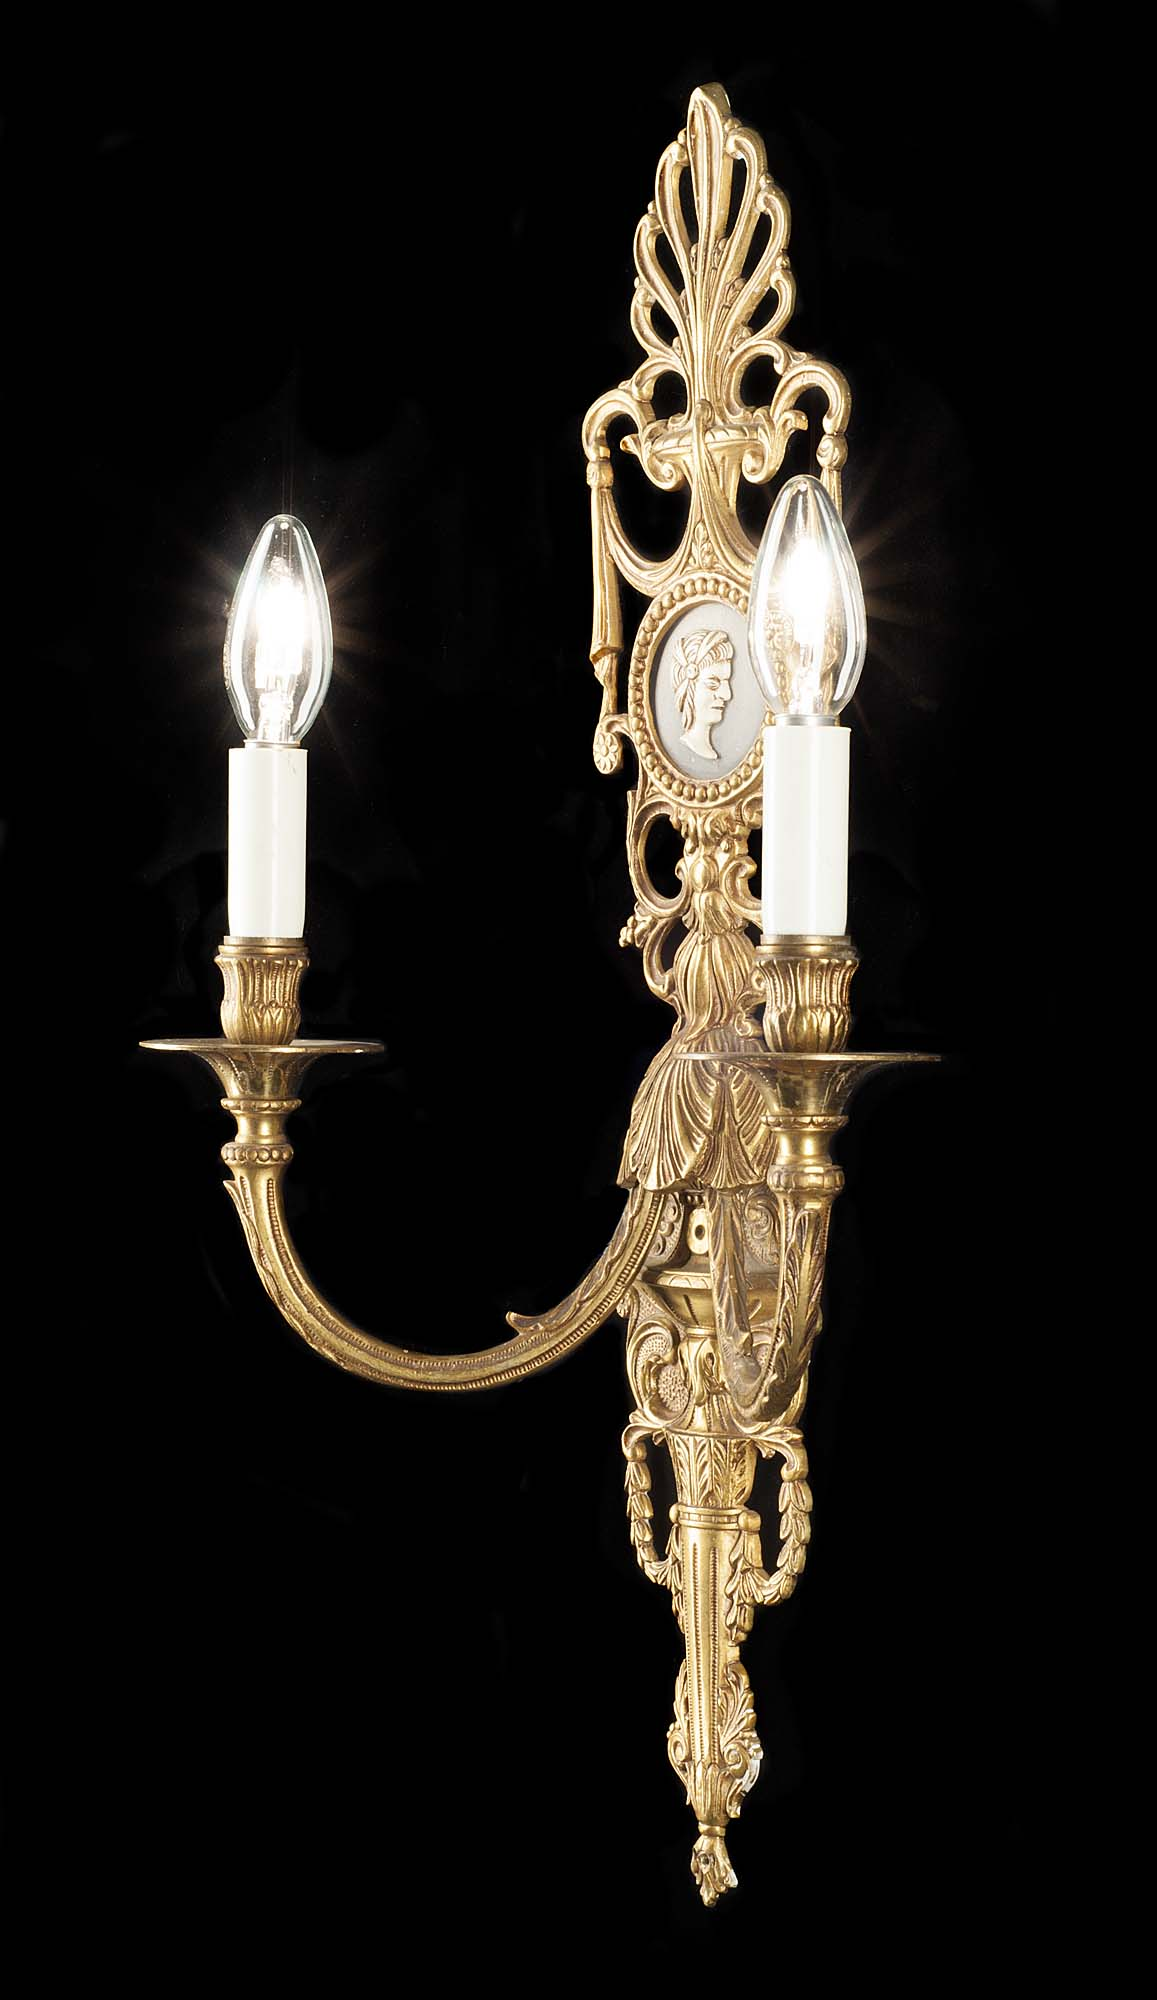 A pair of 20th century Neoclassical style bronze wall lights